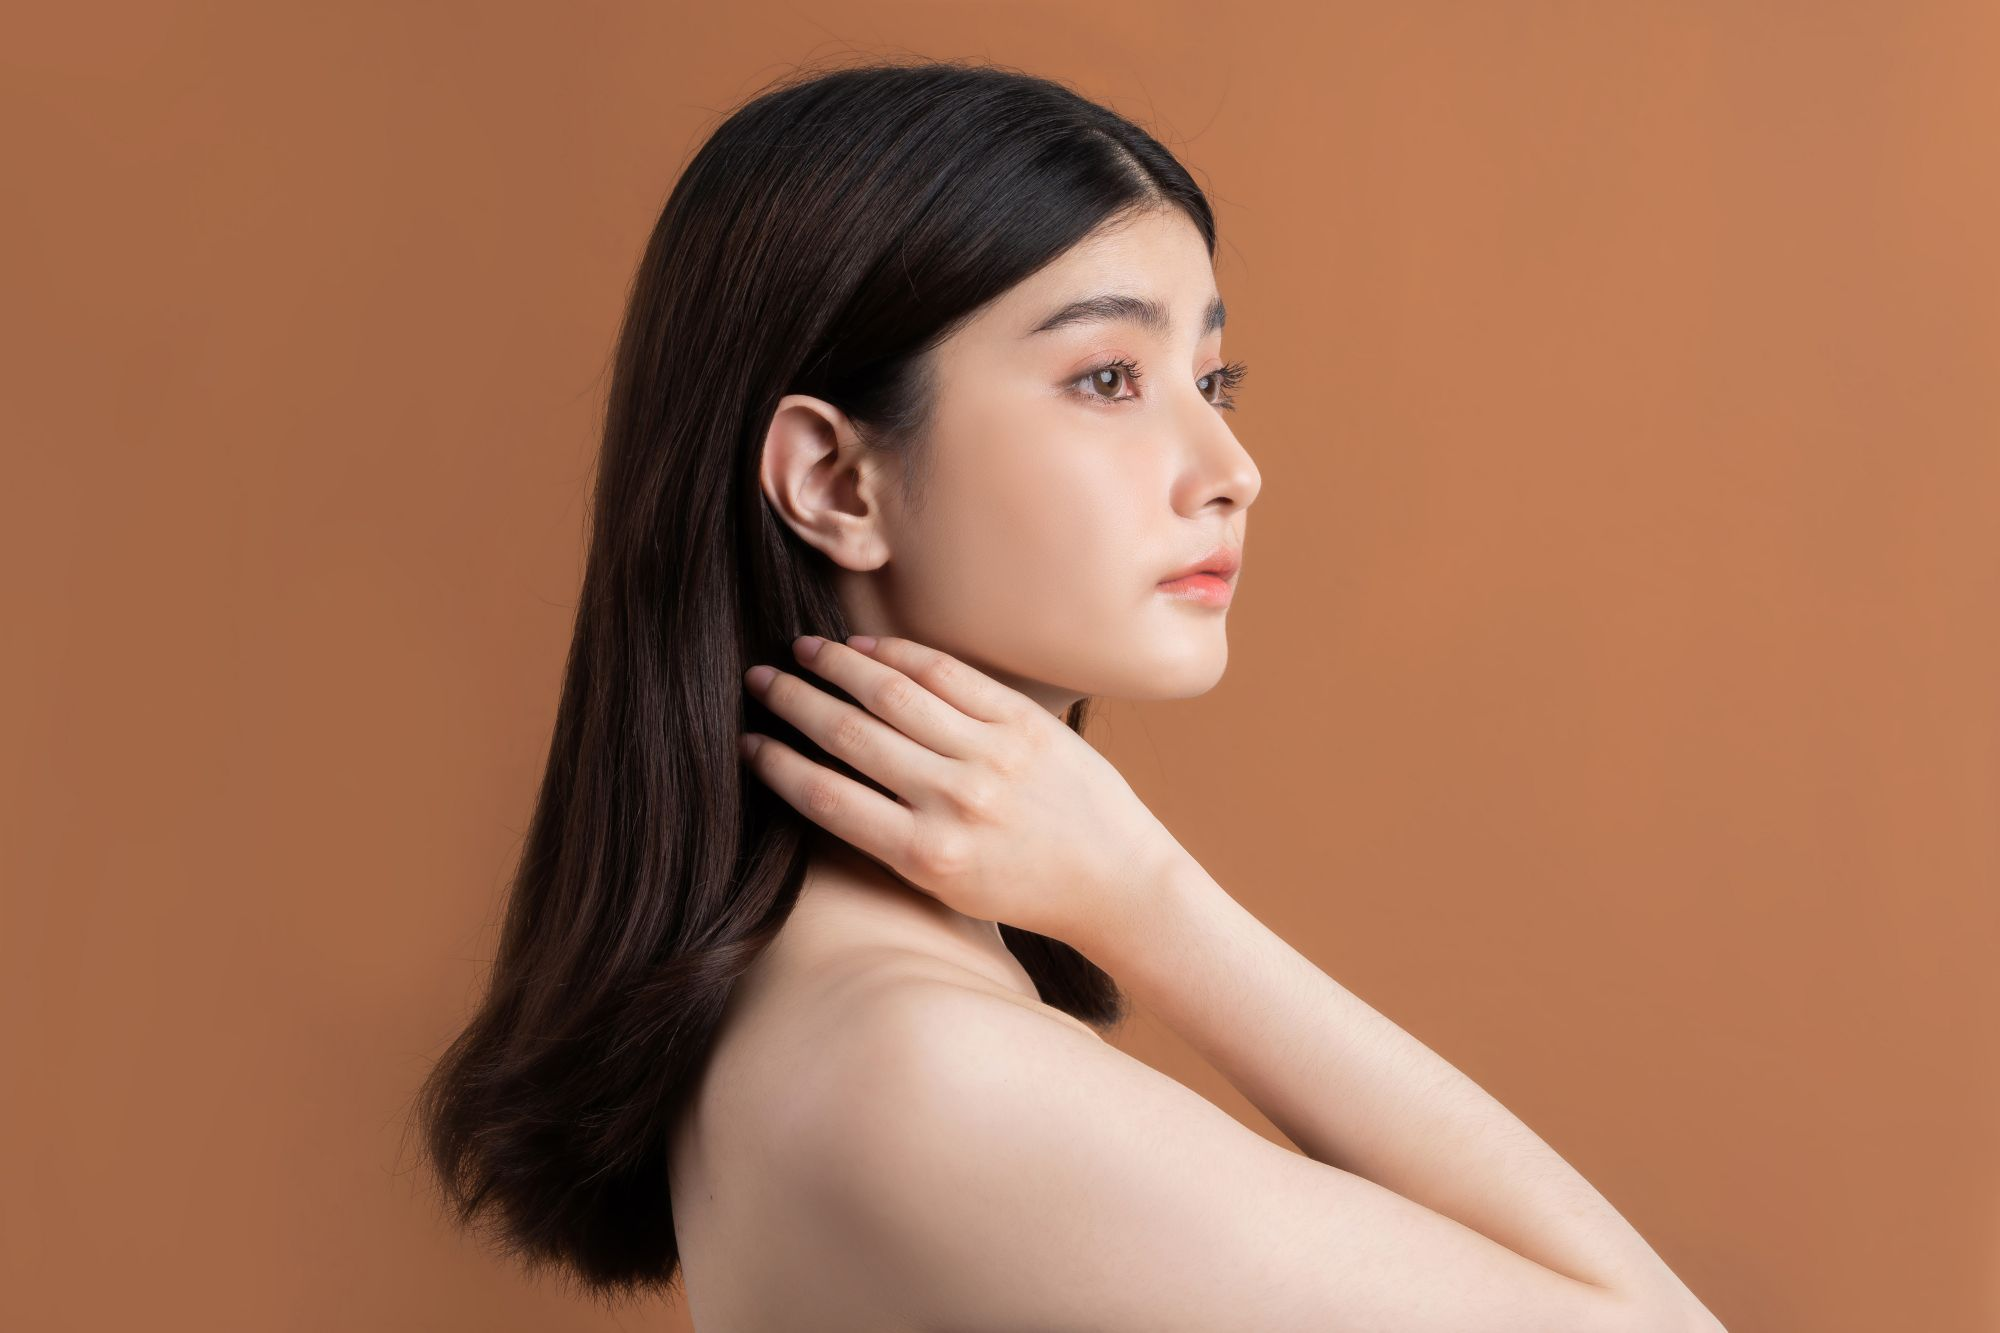 How To Care For Asian Hair In Hot And Humid Weather, According To Trichologist Andrea Clark